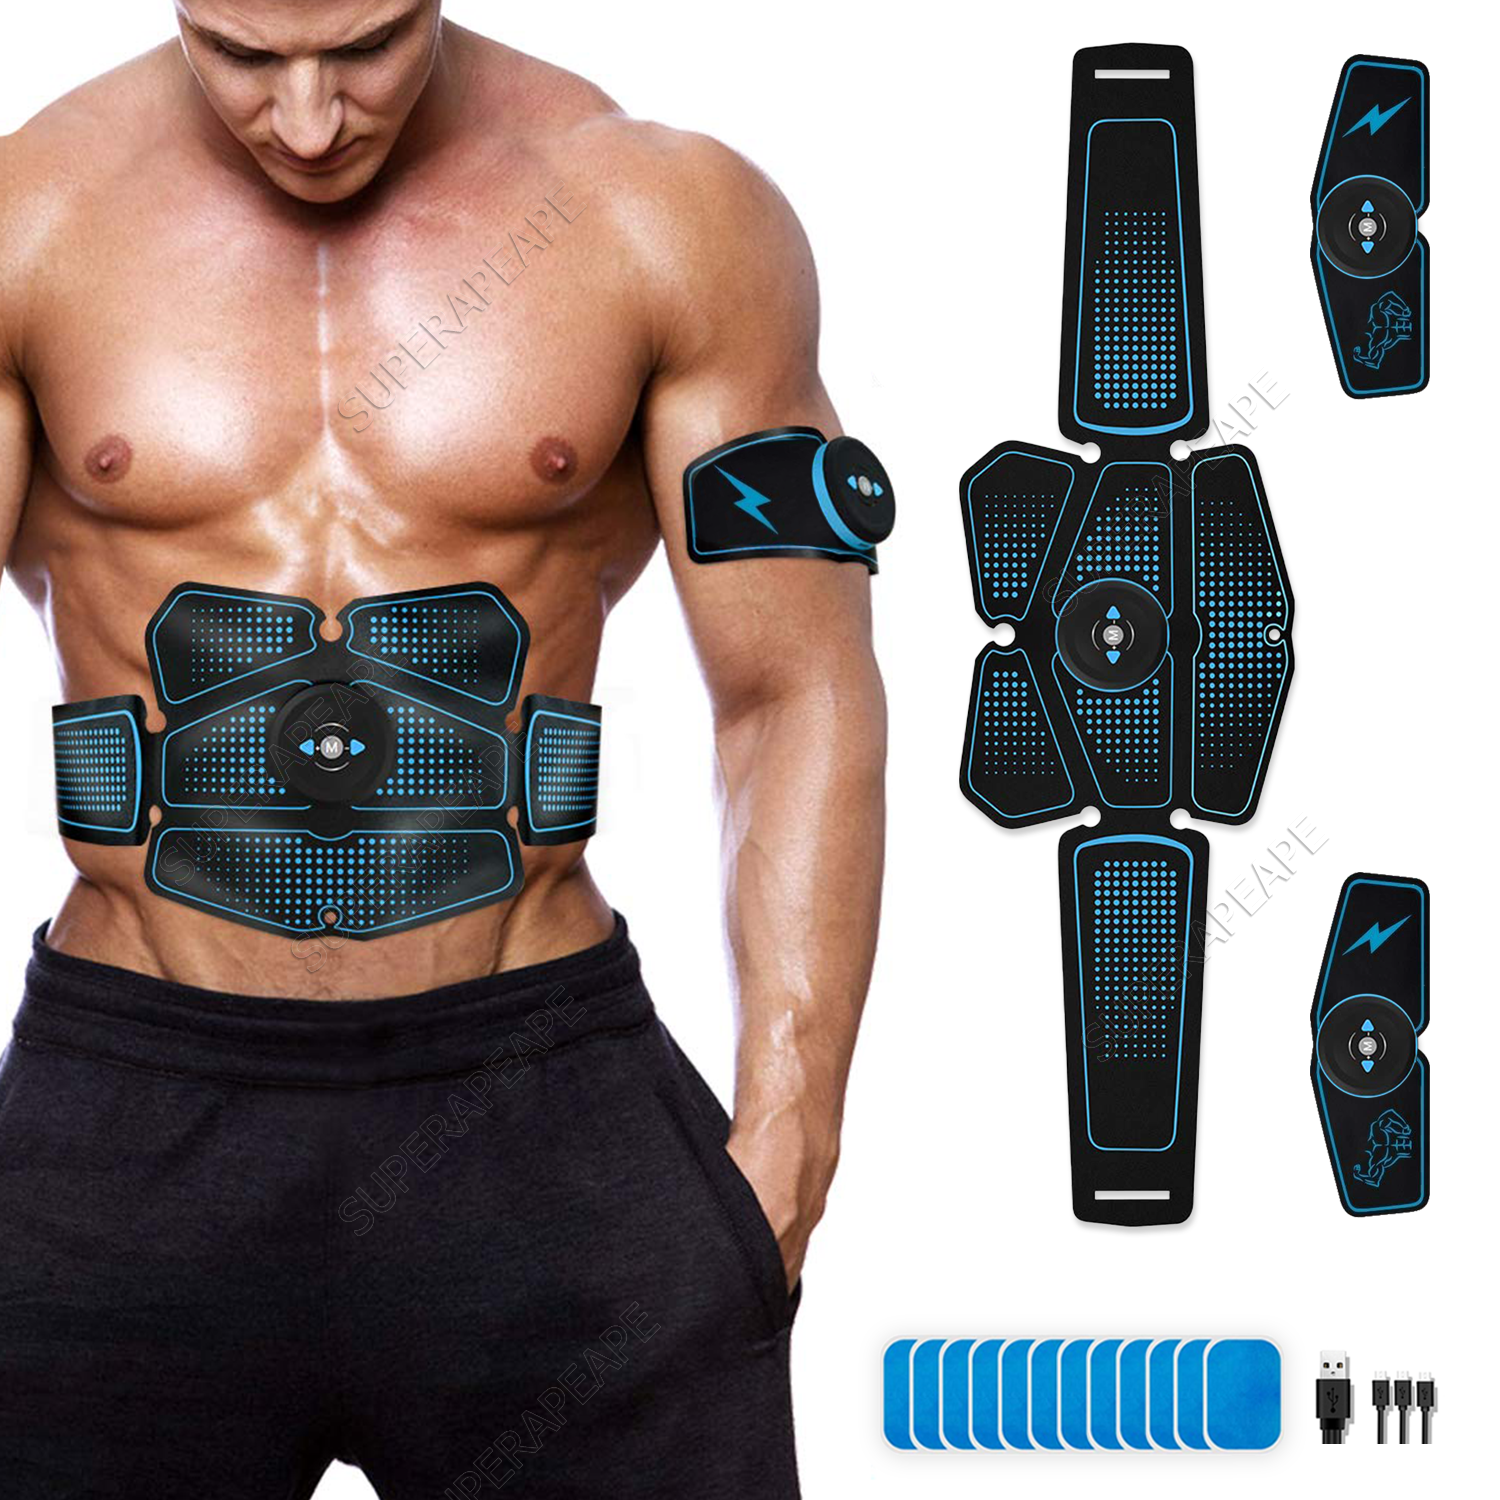 Abdominal Muscle Stimulator Trainer EMS Abs Fitness Equipment Training Gear Muscles Electrostimulator Exercise At Home Gym